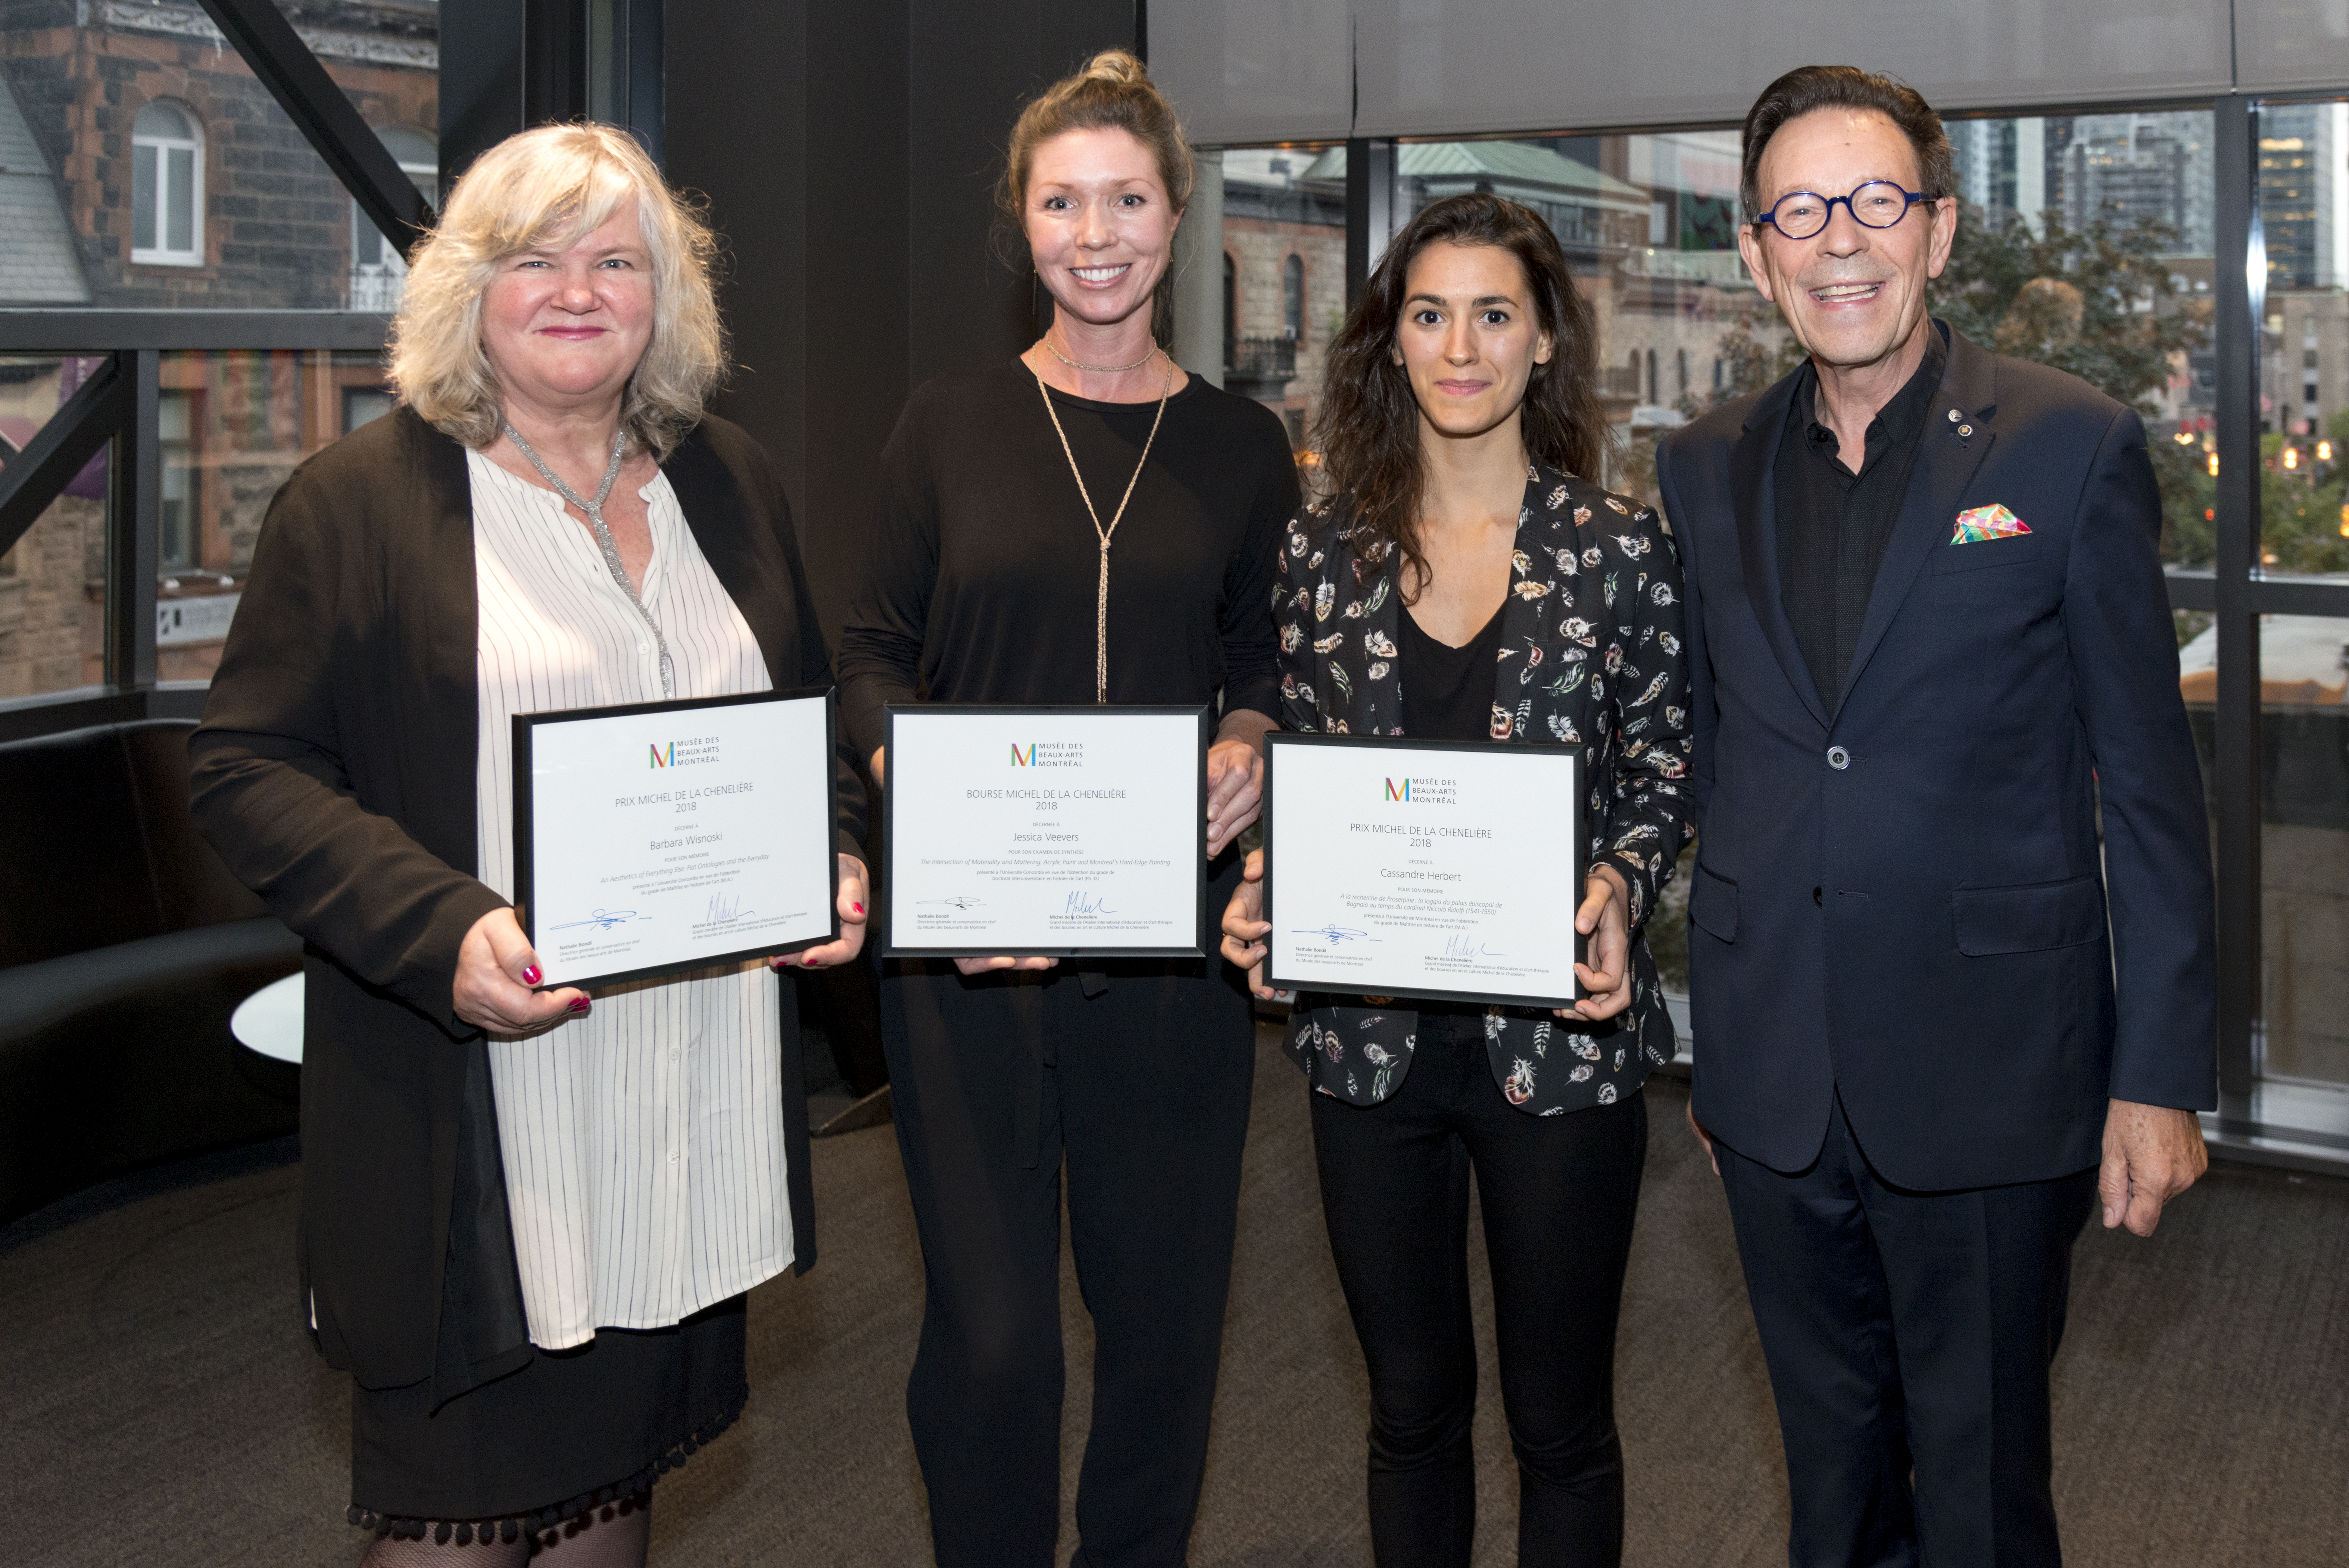 noel des chats 2018 montreal Three Montreal University Students Honoured by the MMFA's Michel  noel des chats 2018 montreal